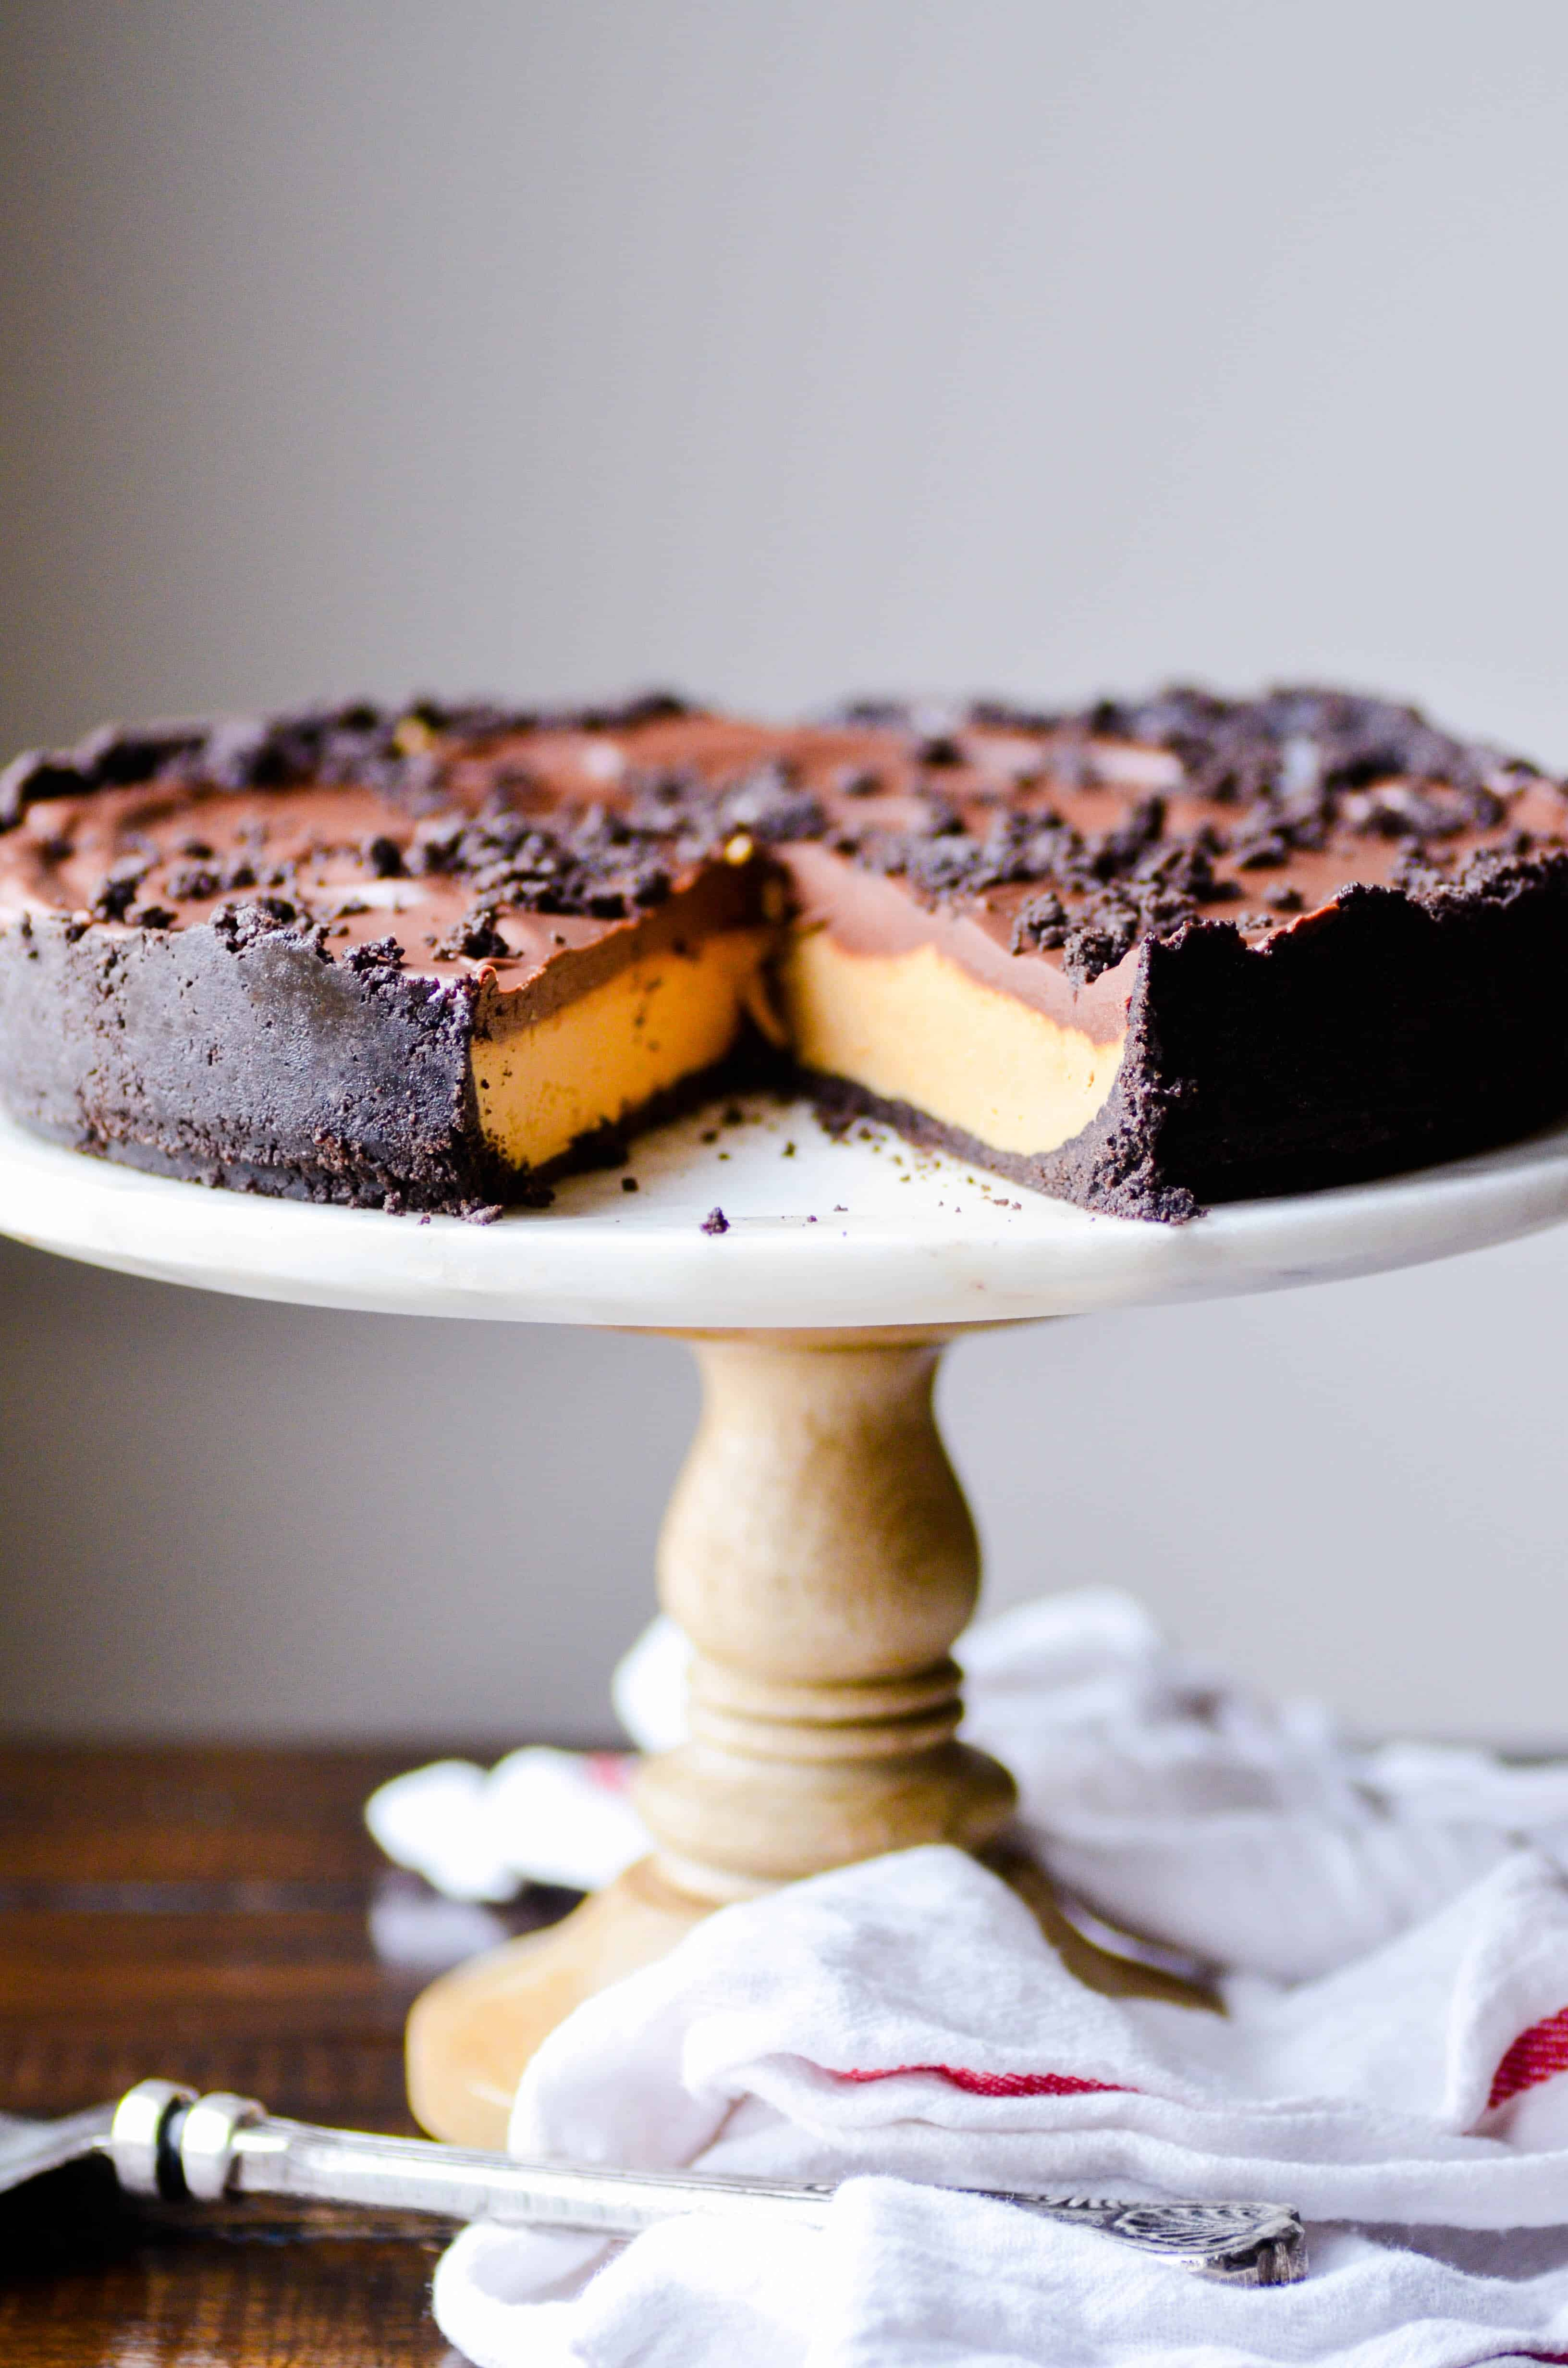 This chocolate peanut butter pie taste like one big Reese's cup with an Oreo crust! You'll fall in love with the creamy peanut butter filling and a that thick layer of chocolate ganache on top.